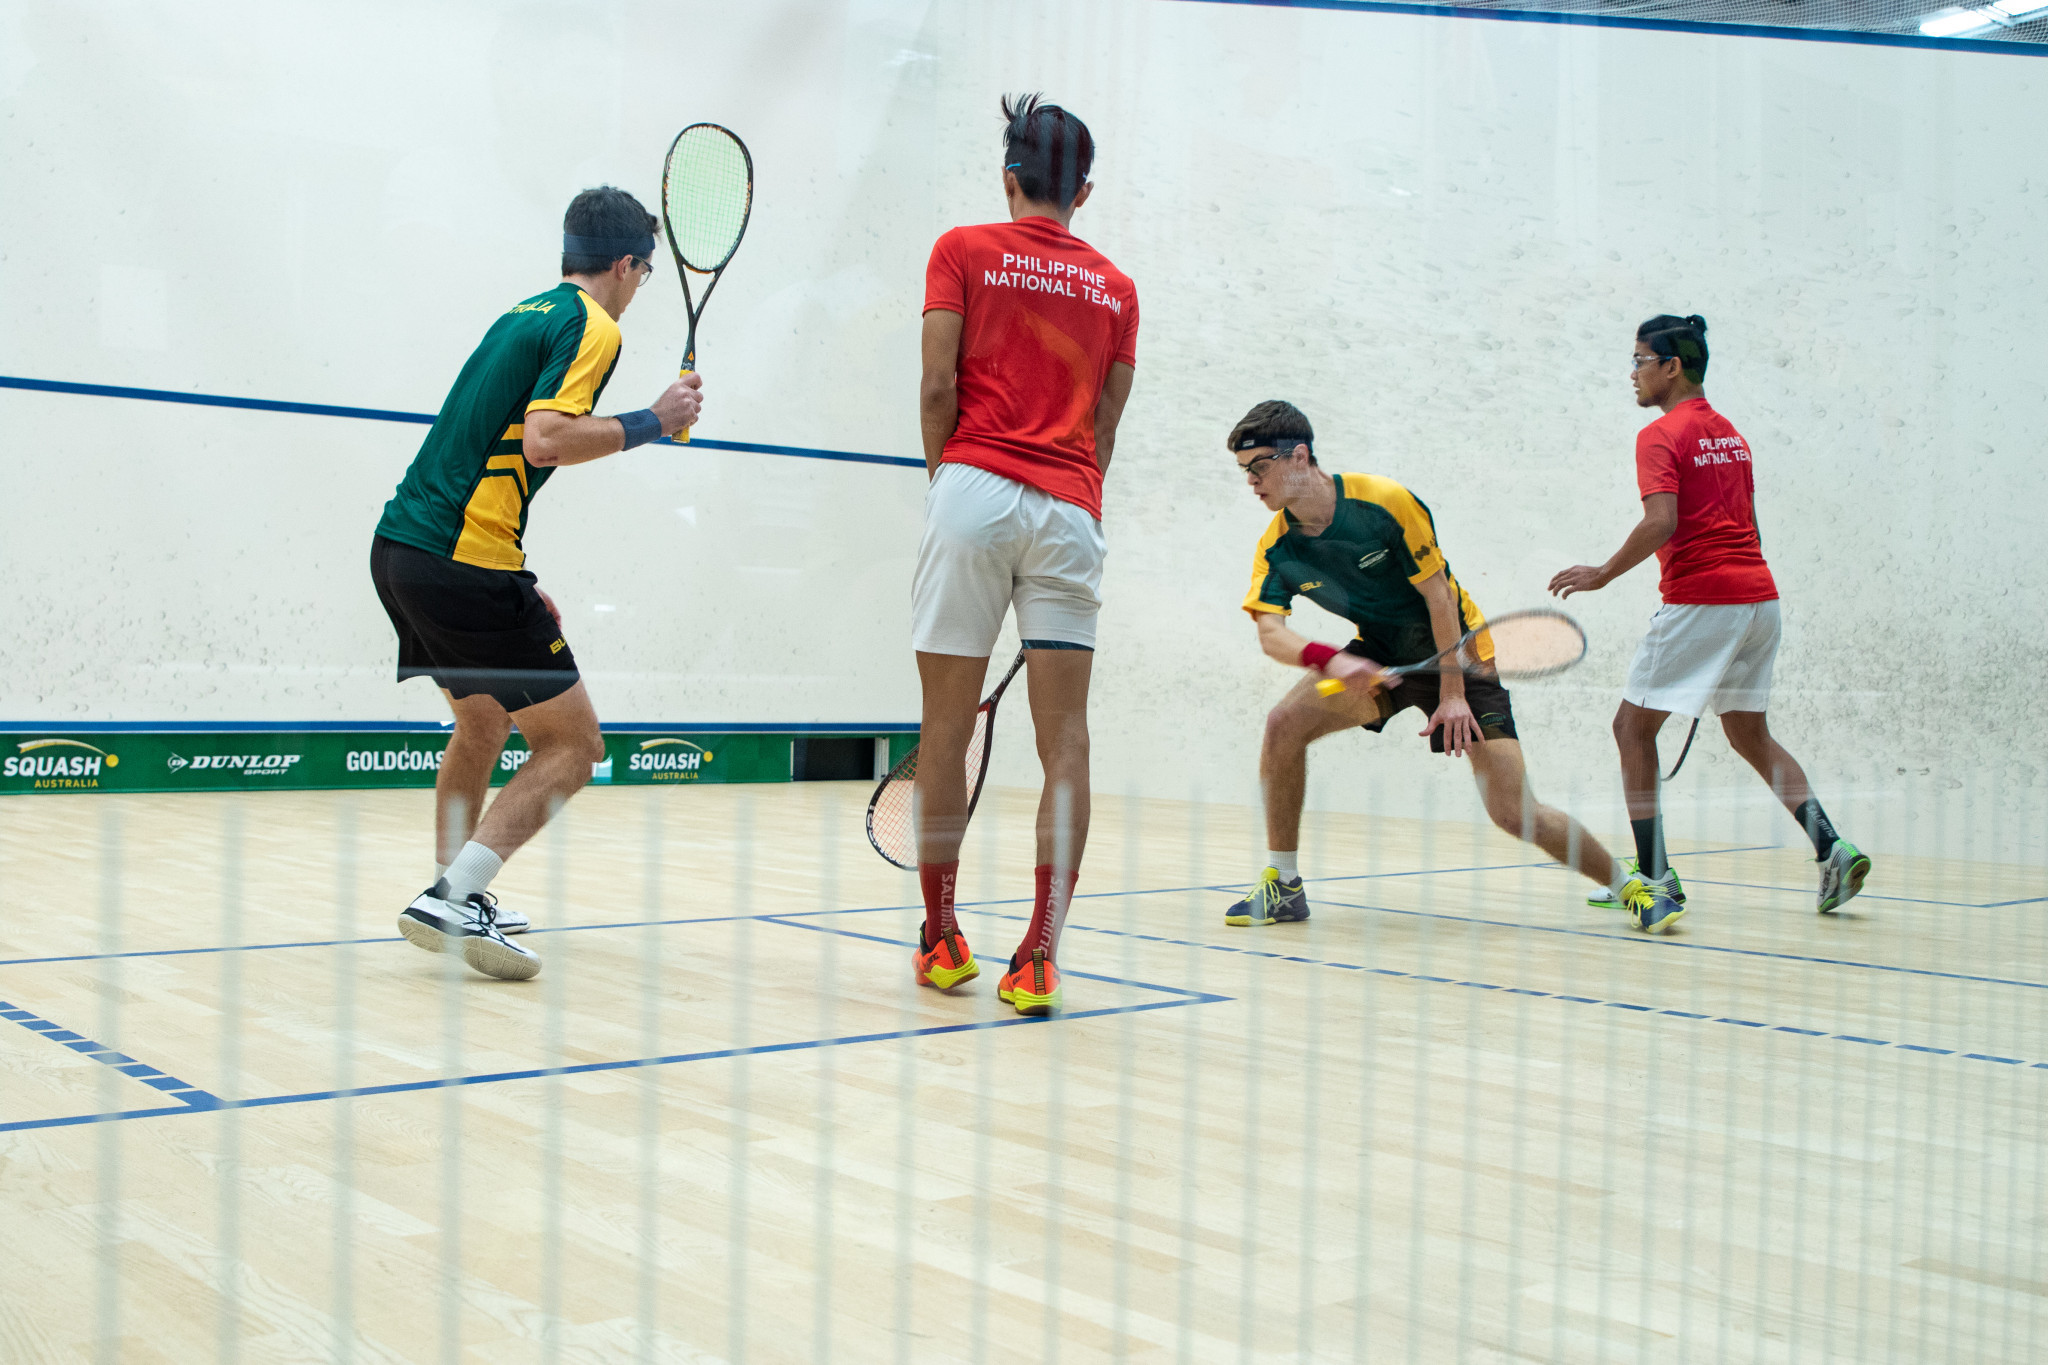 Brothers Nicholas and Thomas Calvert won their men's doubles clash against Malaysia's Darren Chan and Bryan Lim ©WSF